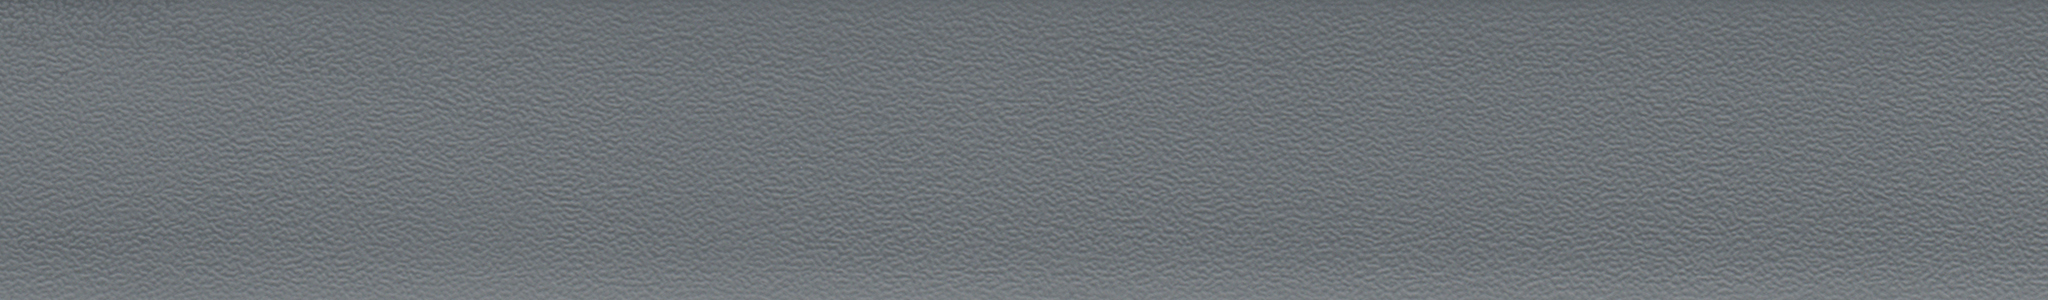 HU 172166 ABS Edge Basalt Grey Pearl 101 Hot-Air